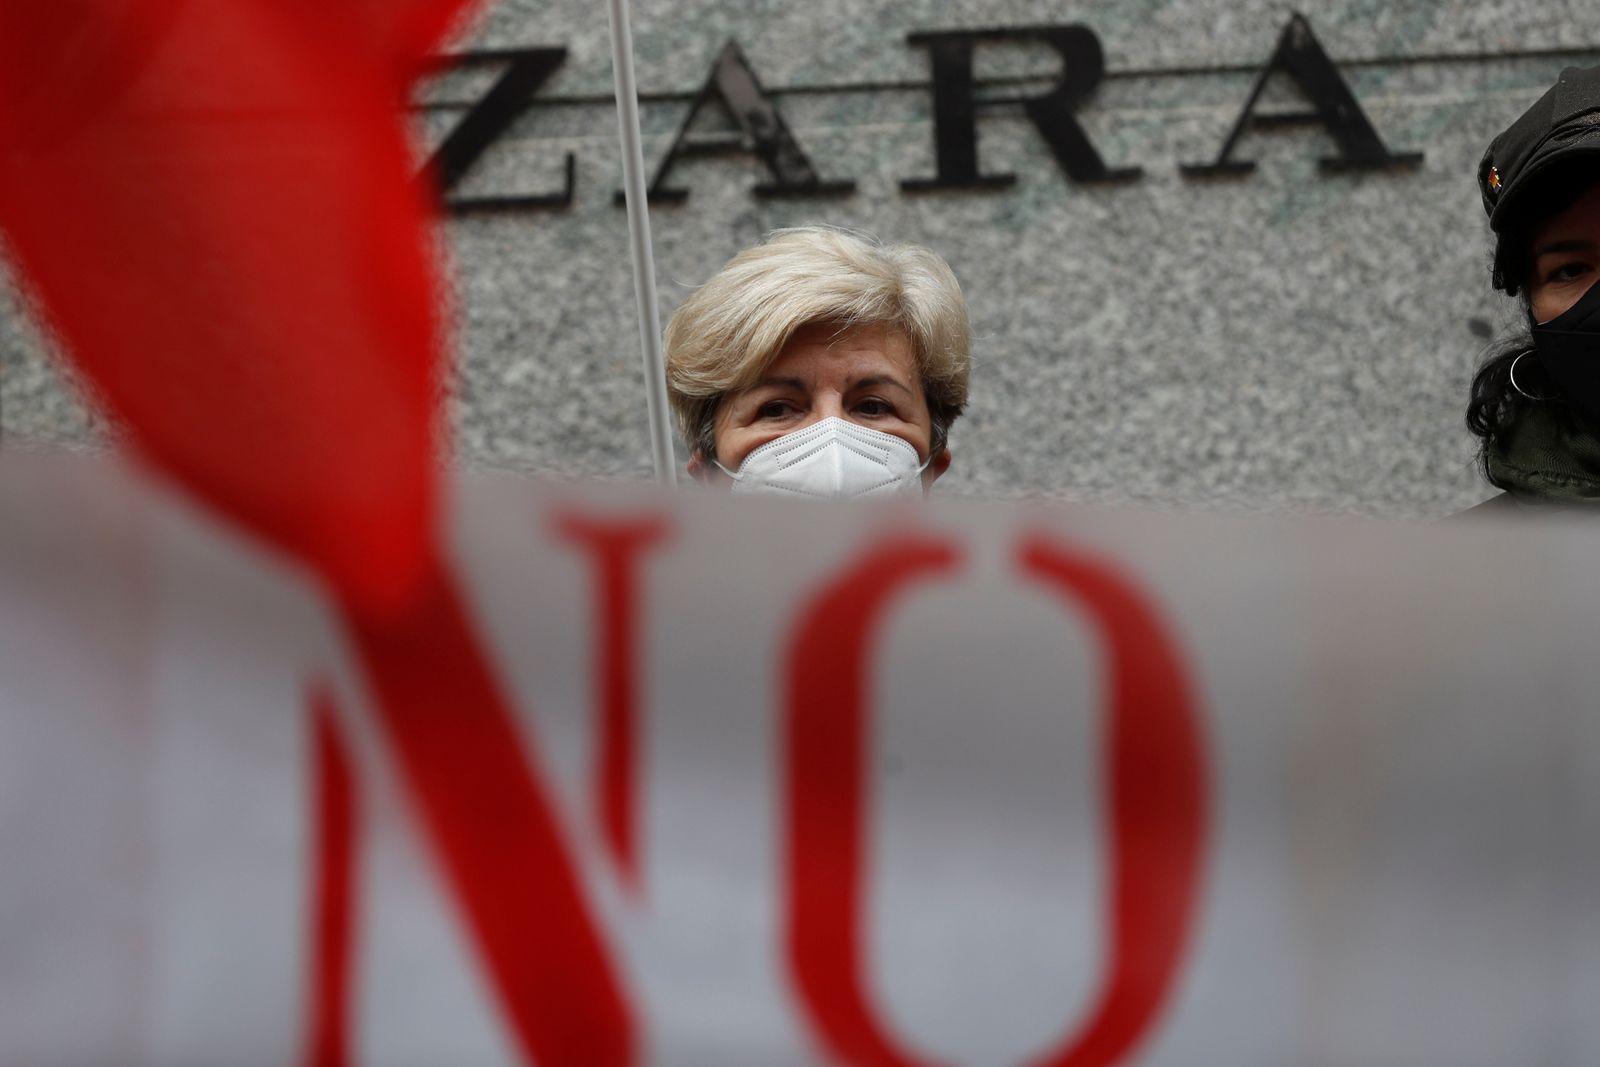 People protest outside a Zara clothing store in Madrid